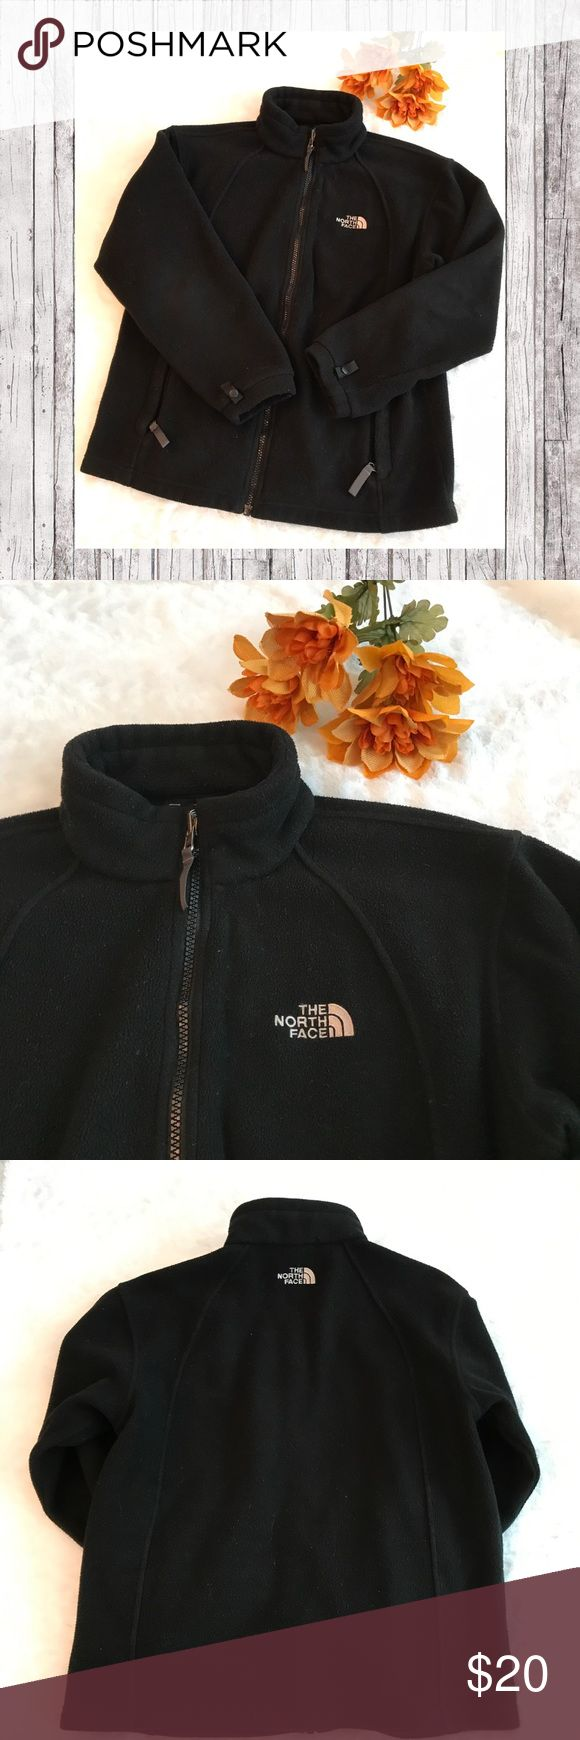 "North Face back fleece zip up jacket Great condition, all black fleece, size large, bust measures 21"" across laying flat, 17"" arm inseam, 24"" length.                                                         Shop with confidence 😘  🏆Top 10% seller 🏆Fast Shipper  🏆4.9 Rating  15% bundle discount on 2 or more items! North Face Jackets & Coats"